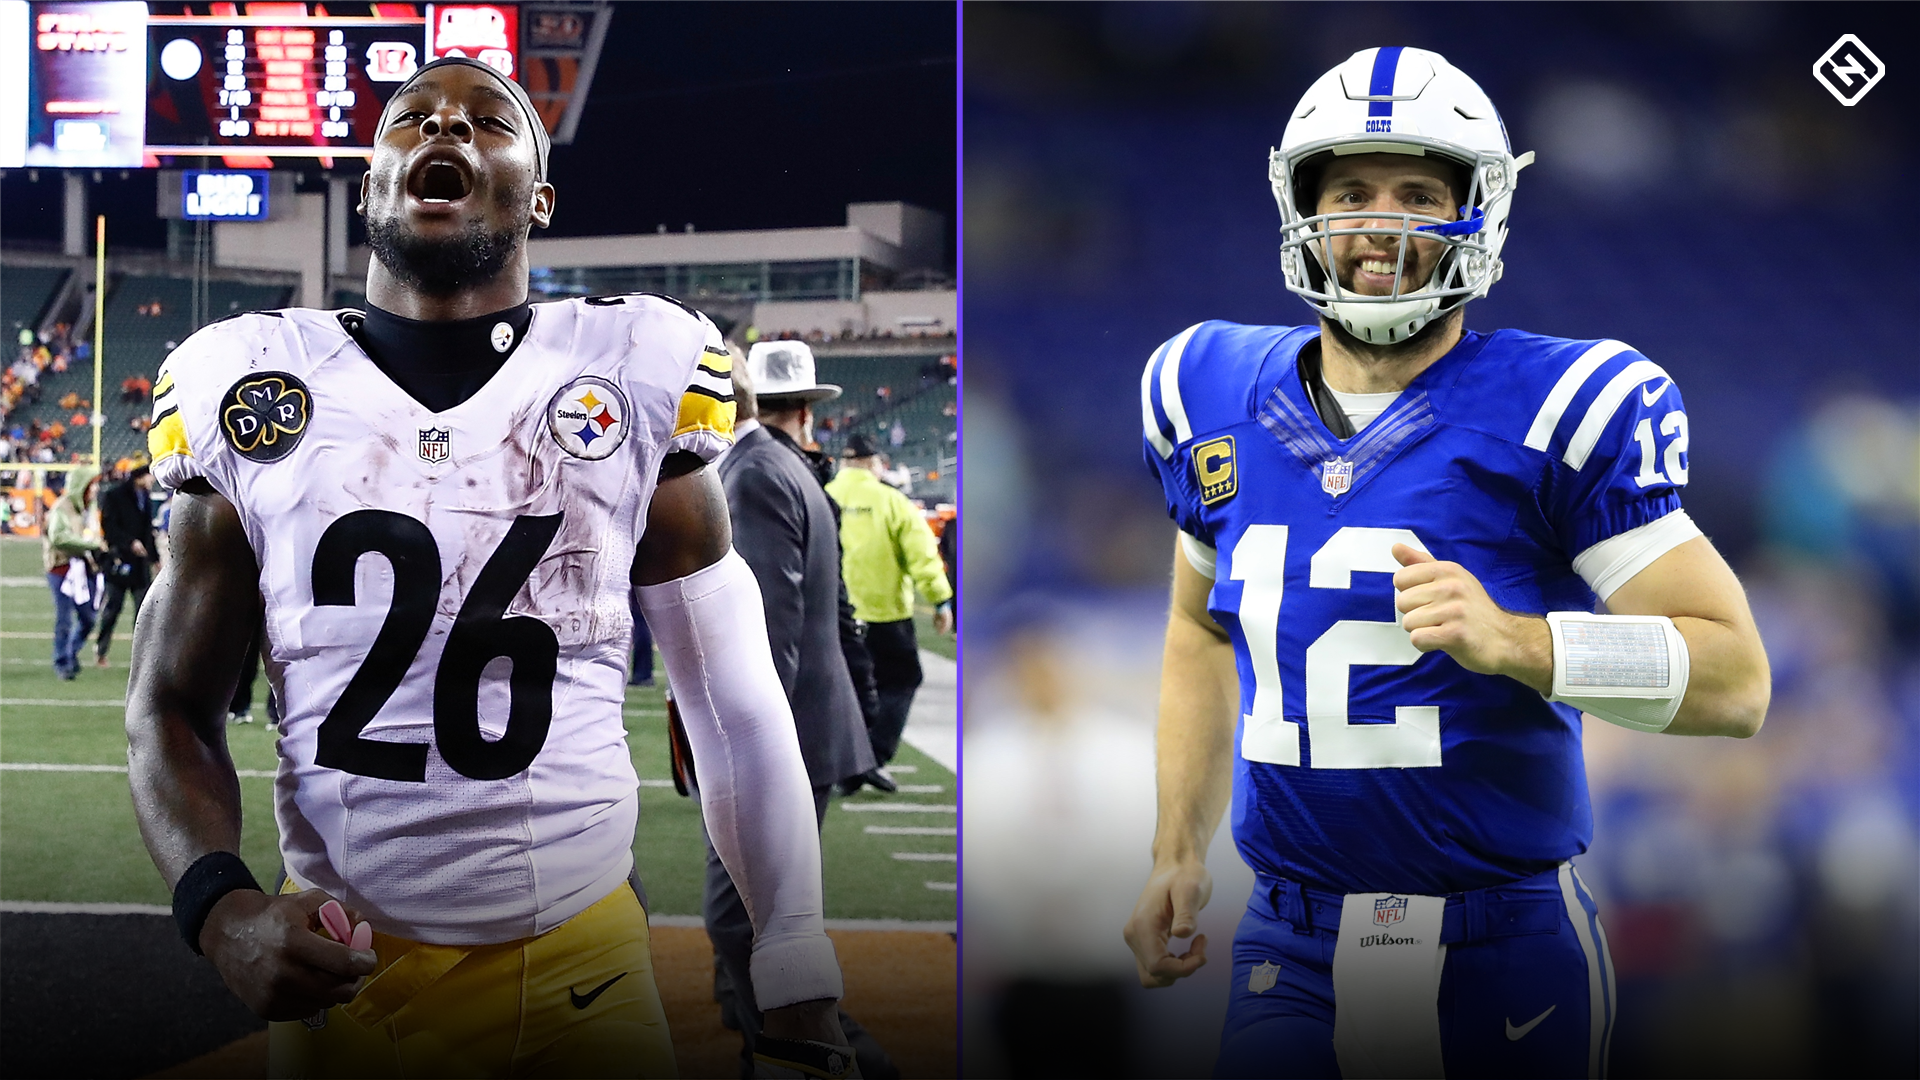 Le'Veon Bell speculates about playing with Andrew Luck, sparking Colts rumors